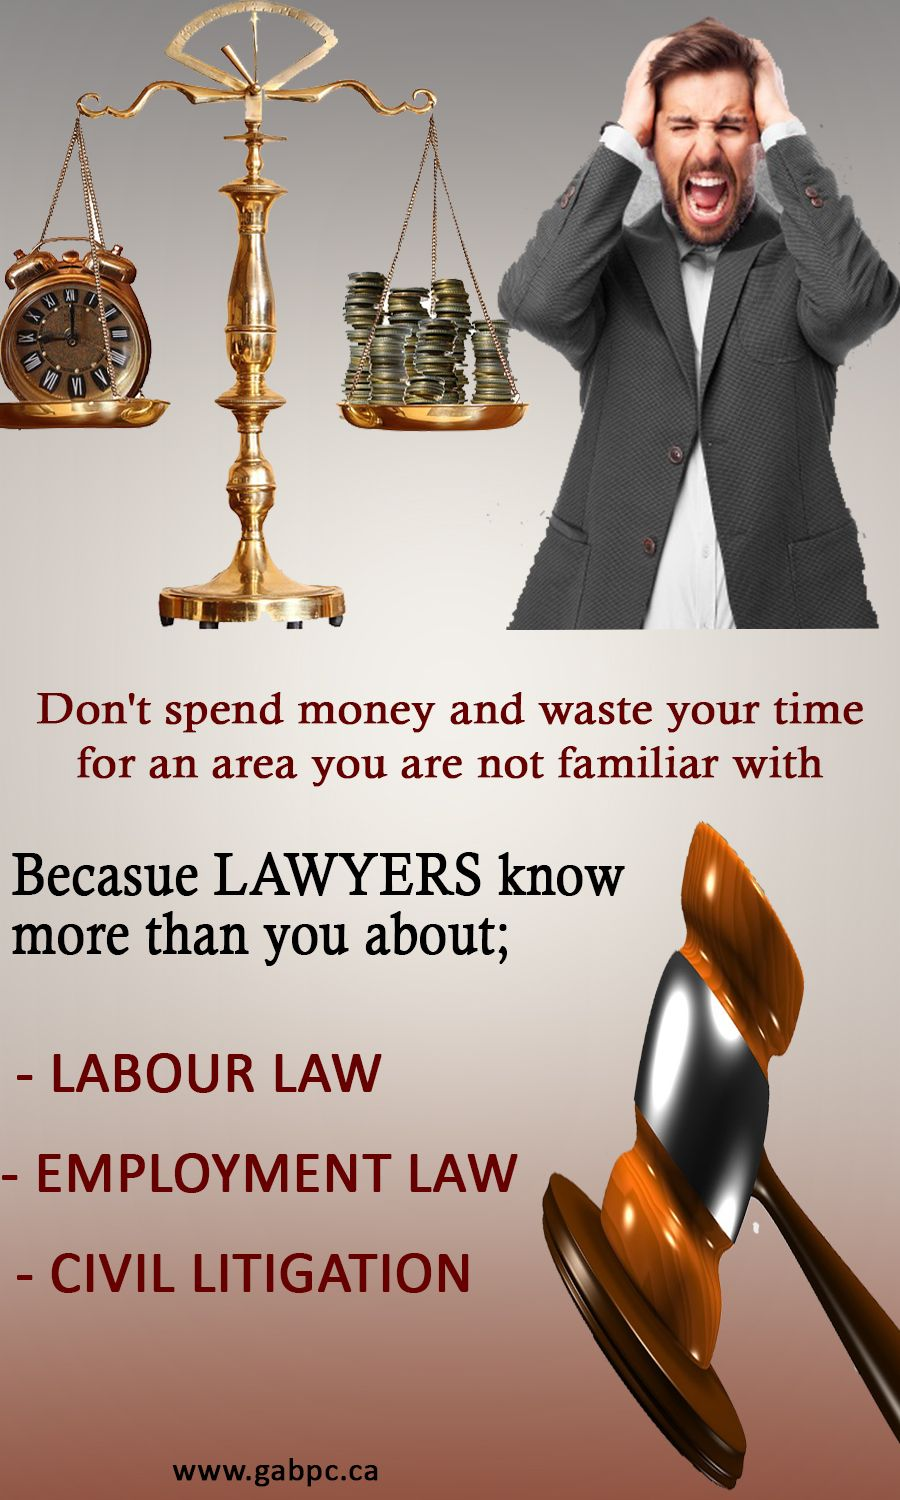 GAB Law Firm is located in Mississauga Ontario, providing